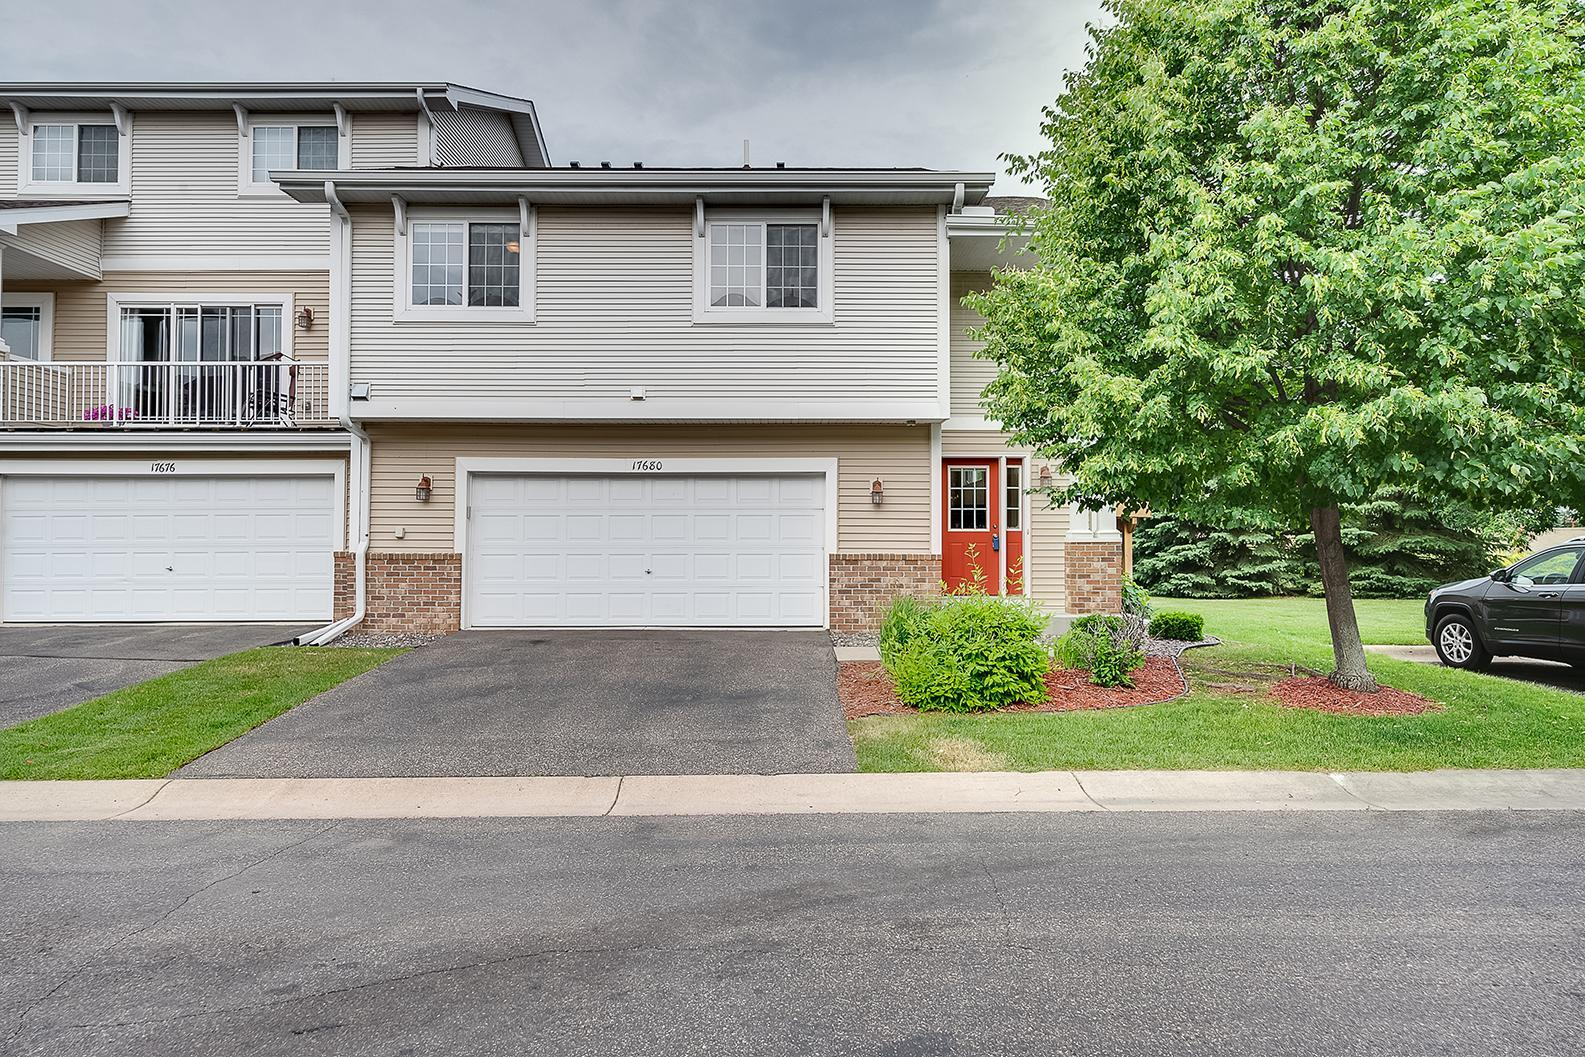 17680 69th N Property Photo - Maple Grove, MN real estate listing